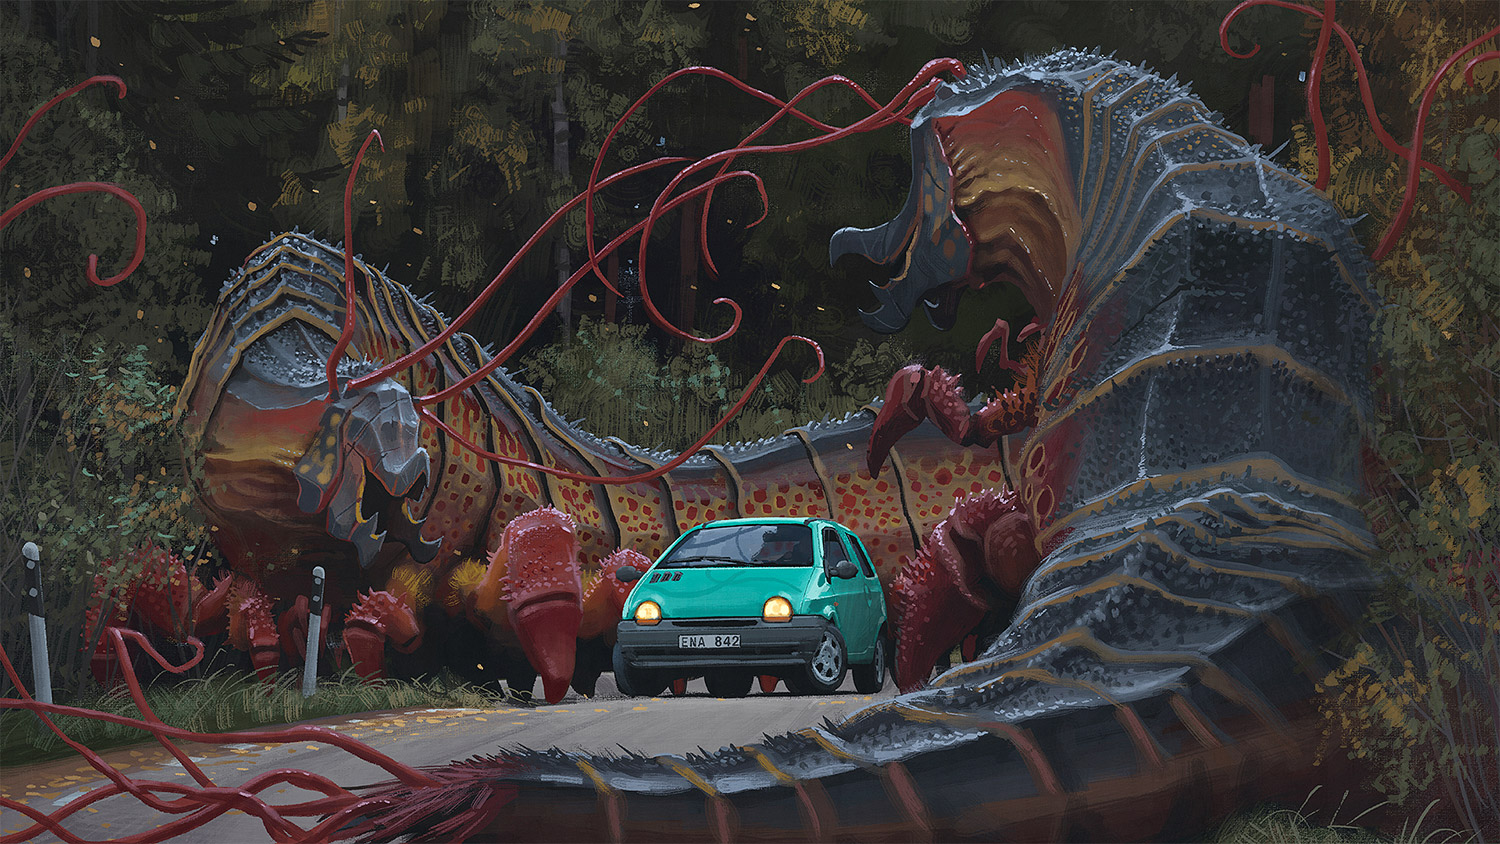 Simon Stalenhag - overgrown worms